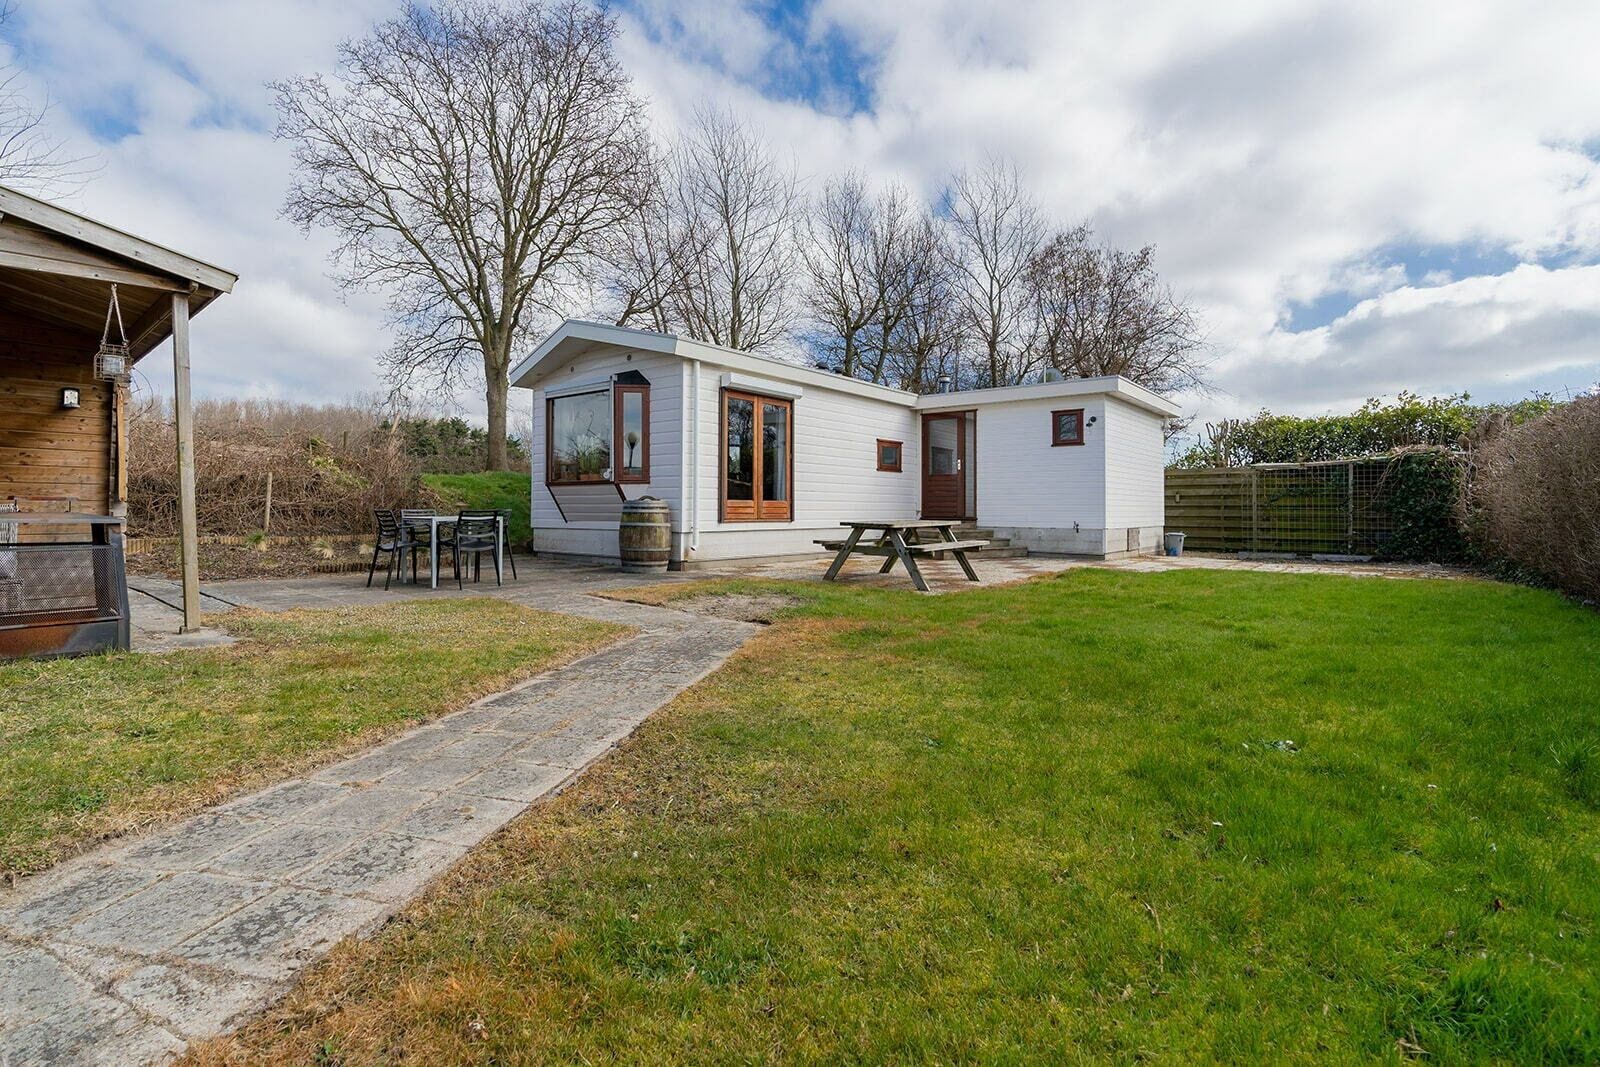 Chalet 41 - Haayse Bos Ouddorp